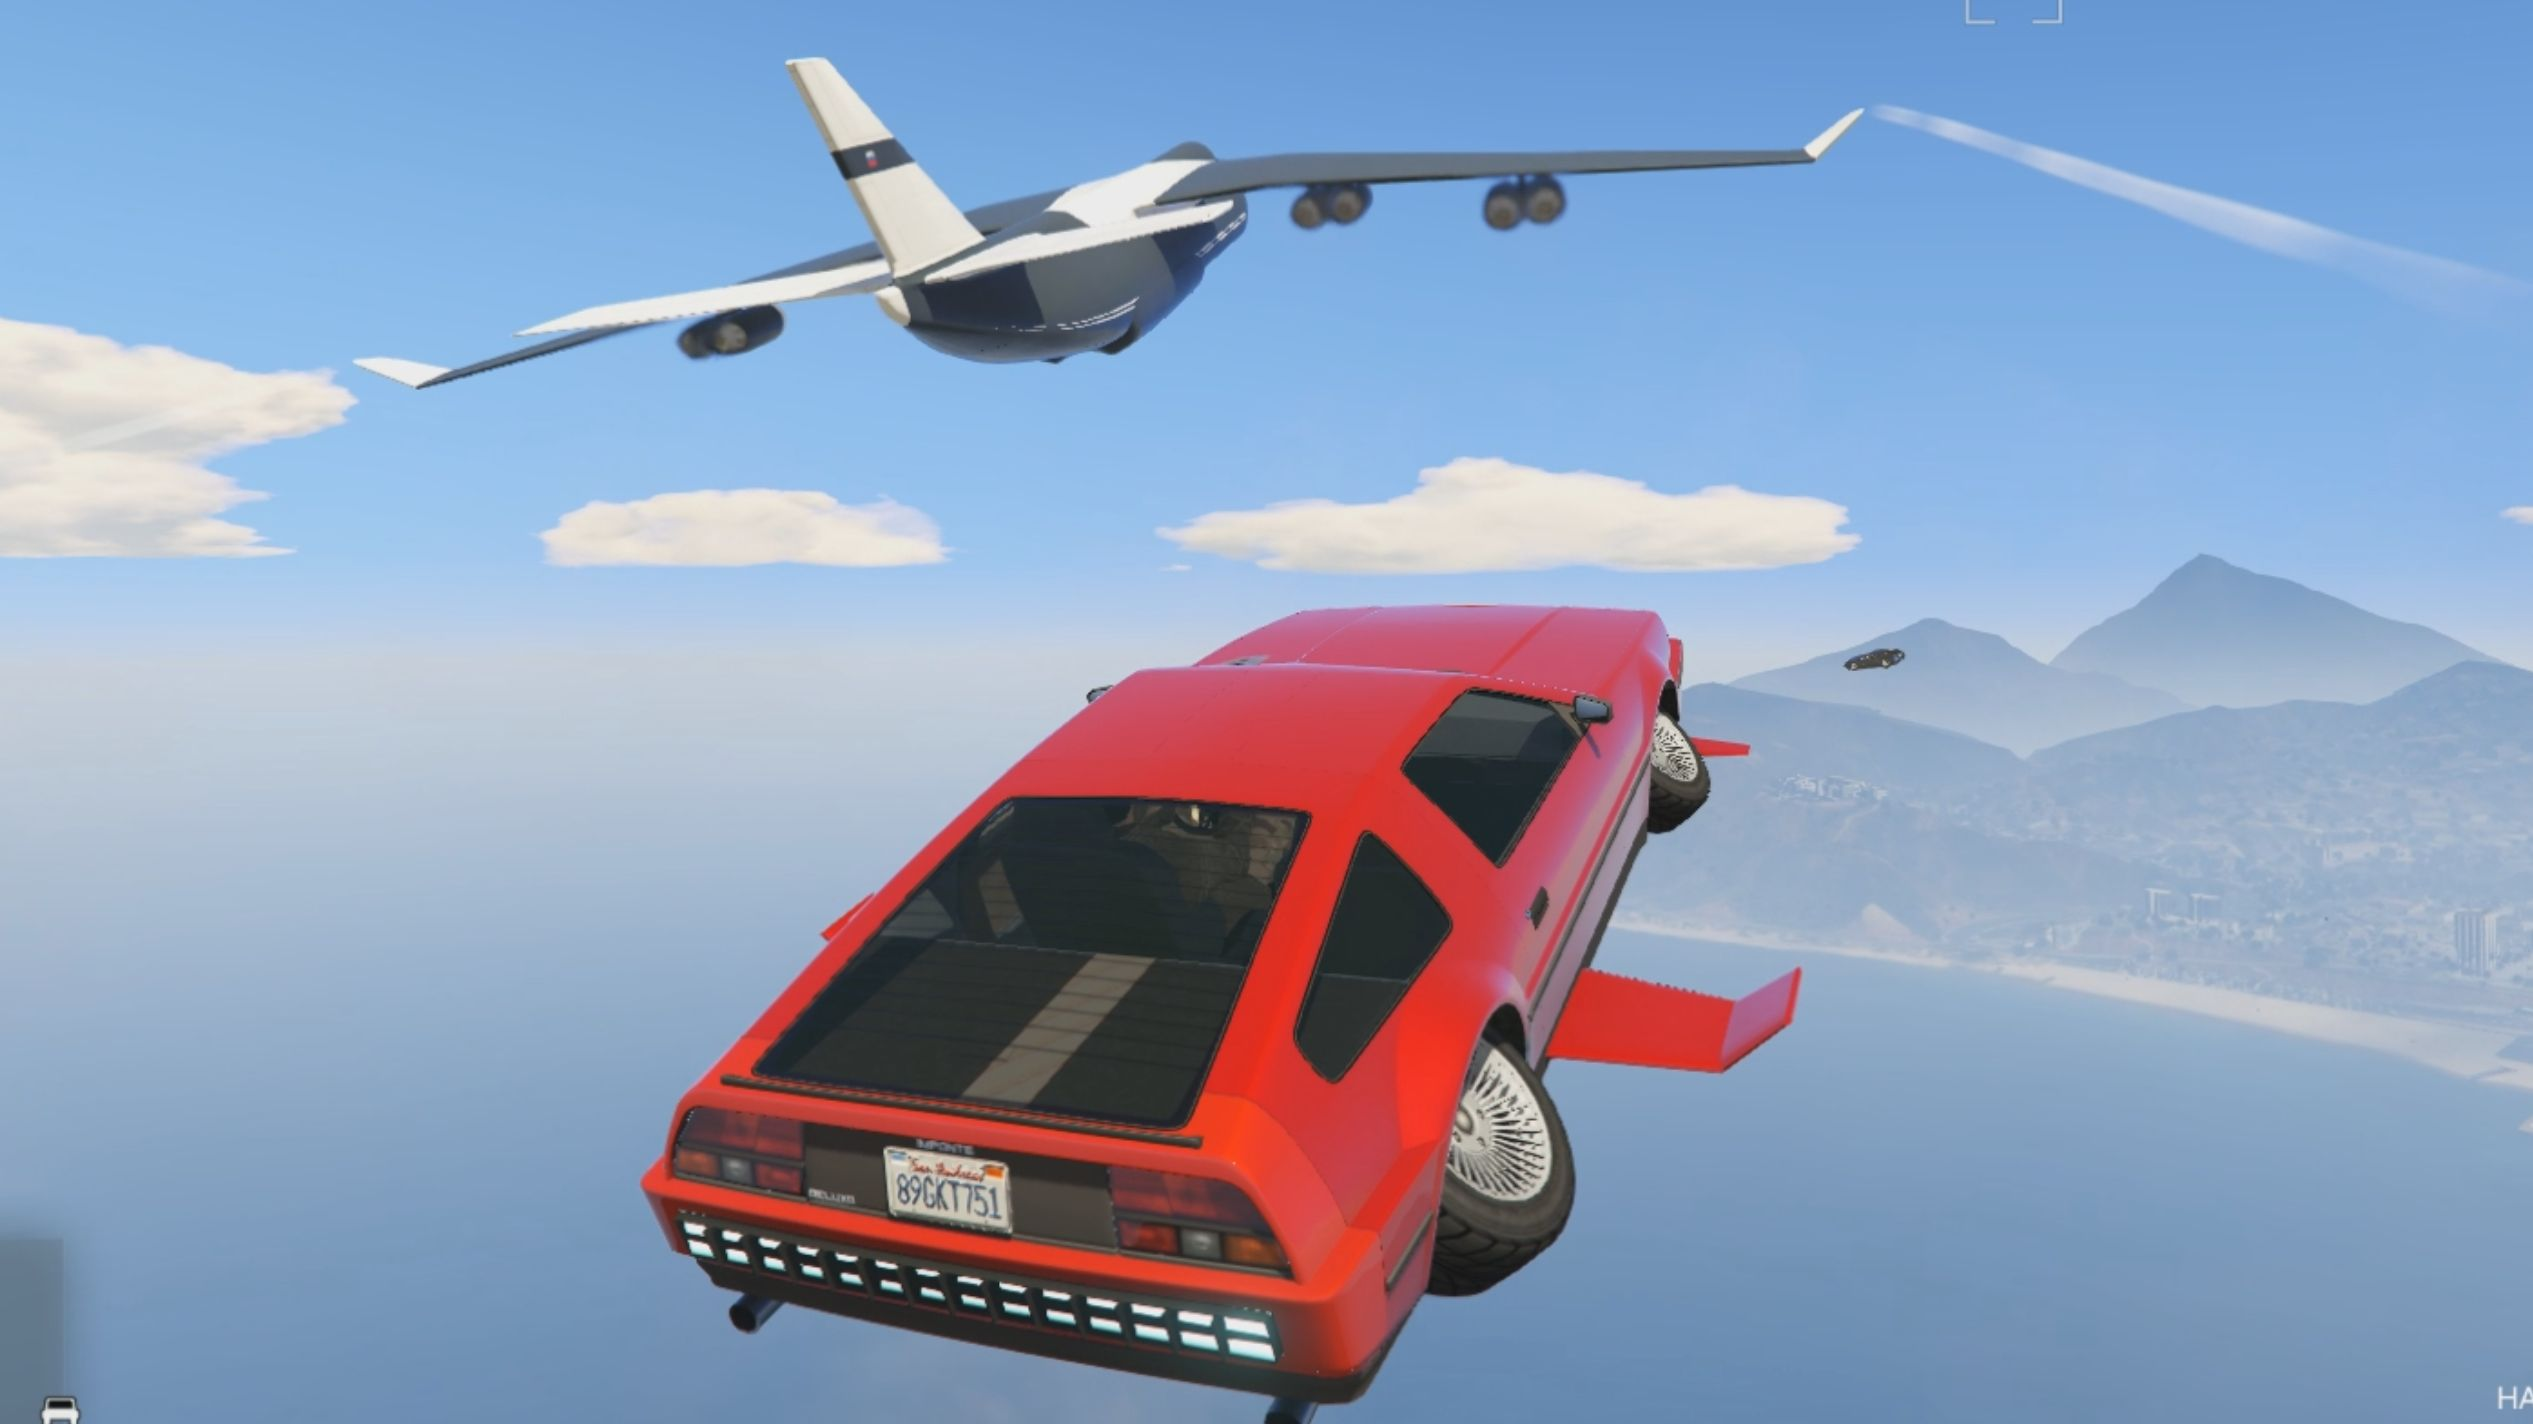 Get extra cash for import/export sell missions in GTA Online, and